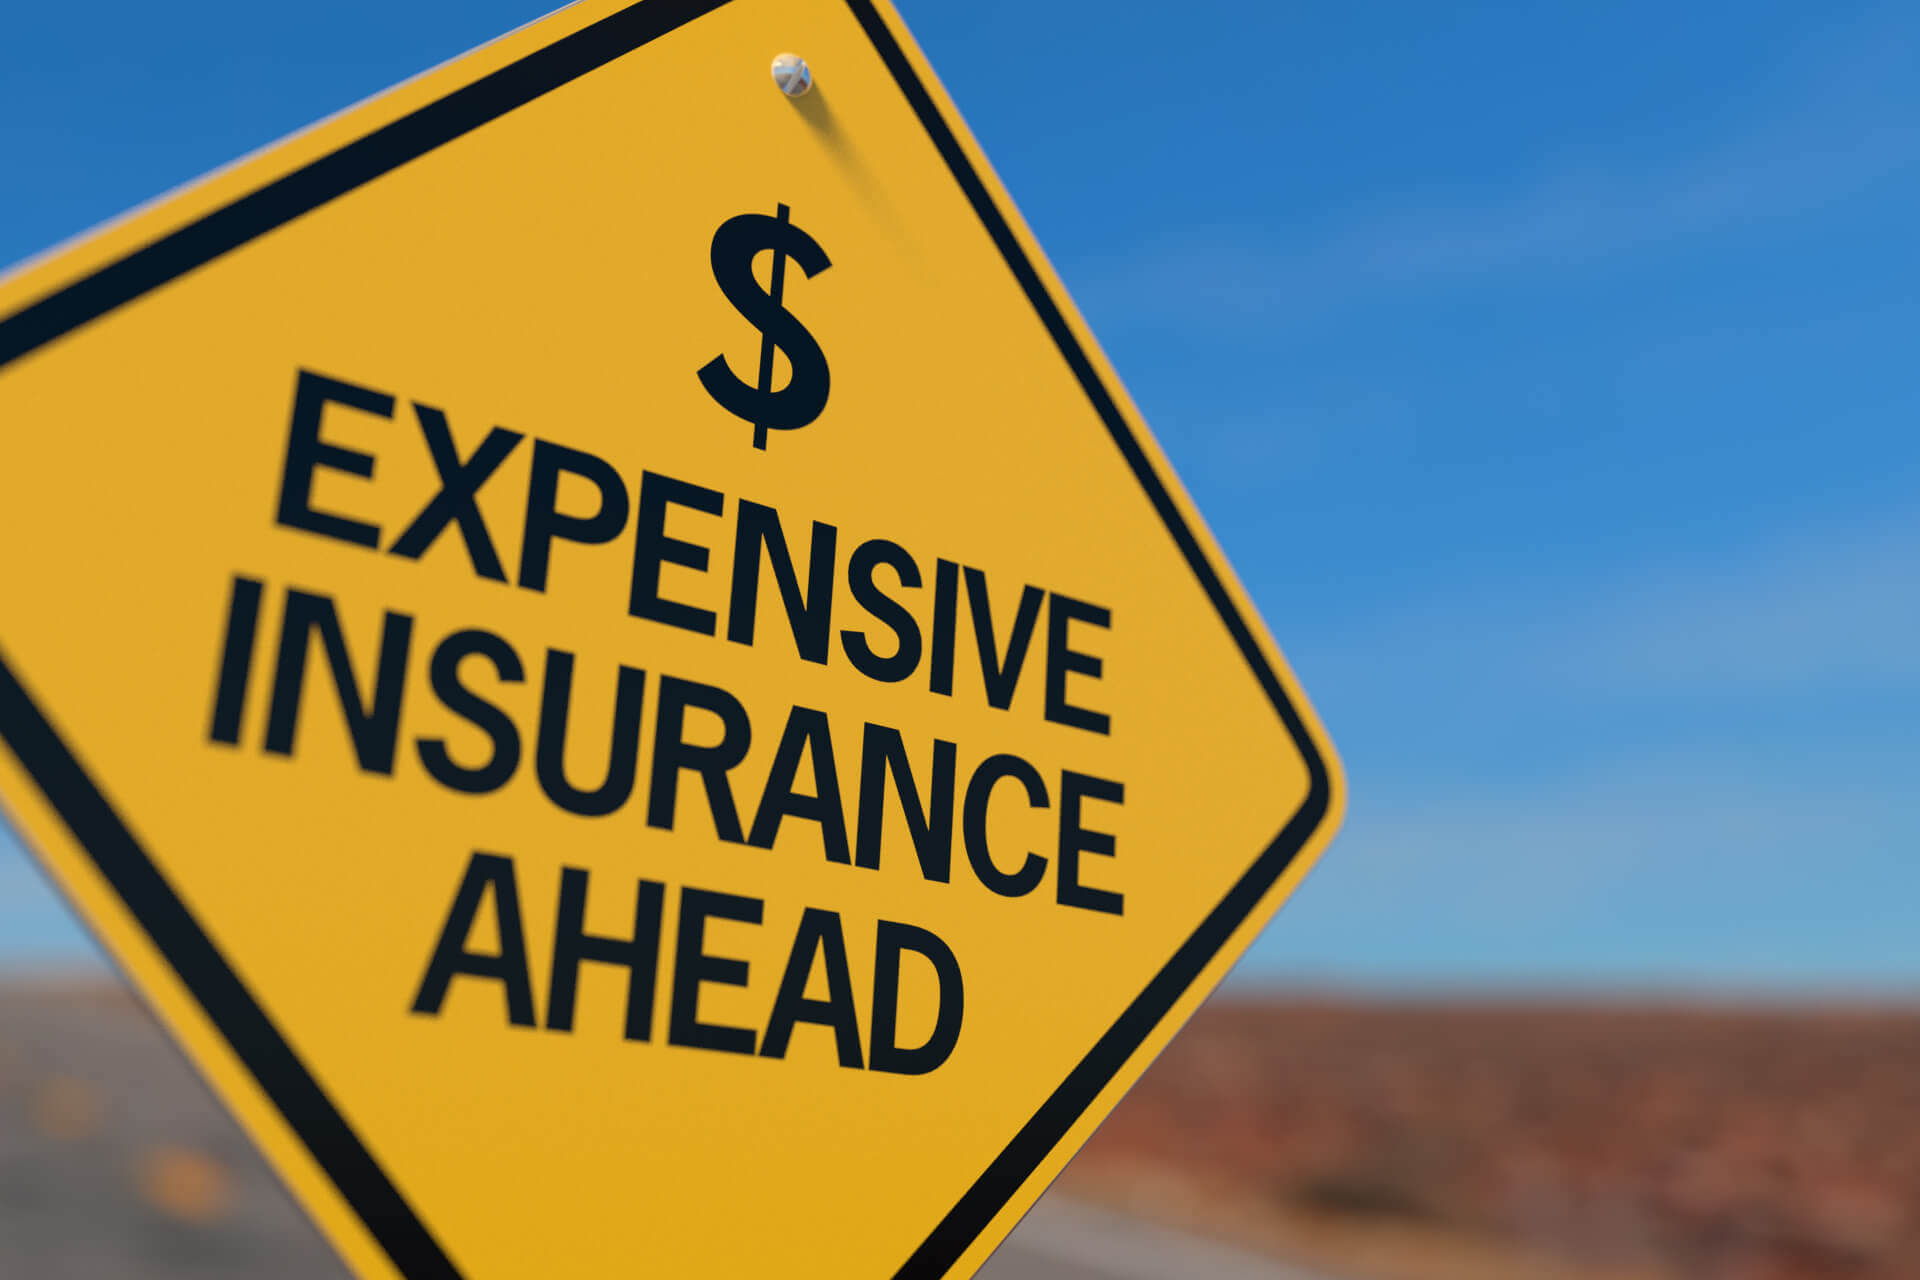 expensive-insurance-sign-wo